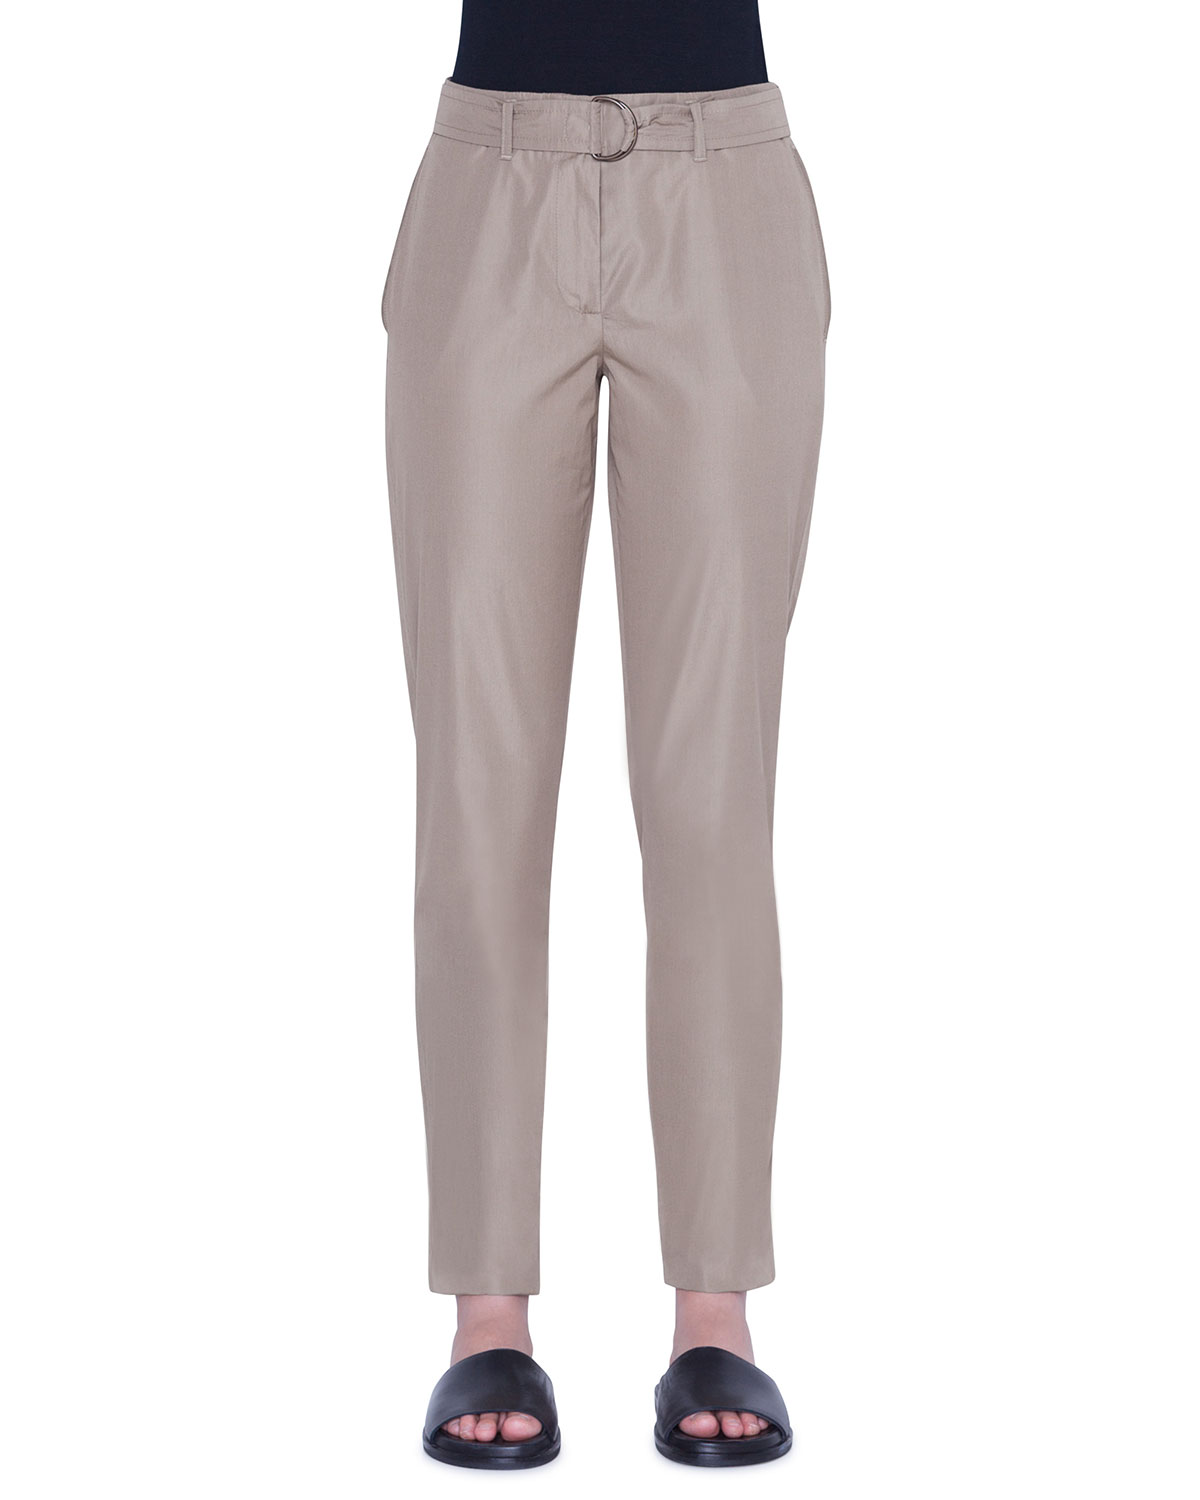 Akris Punto Pants FALLON CHINO-STYLE COTTON ANKLE PANTS